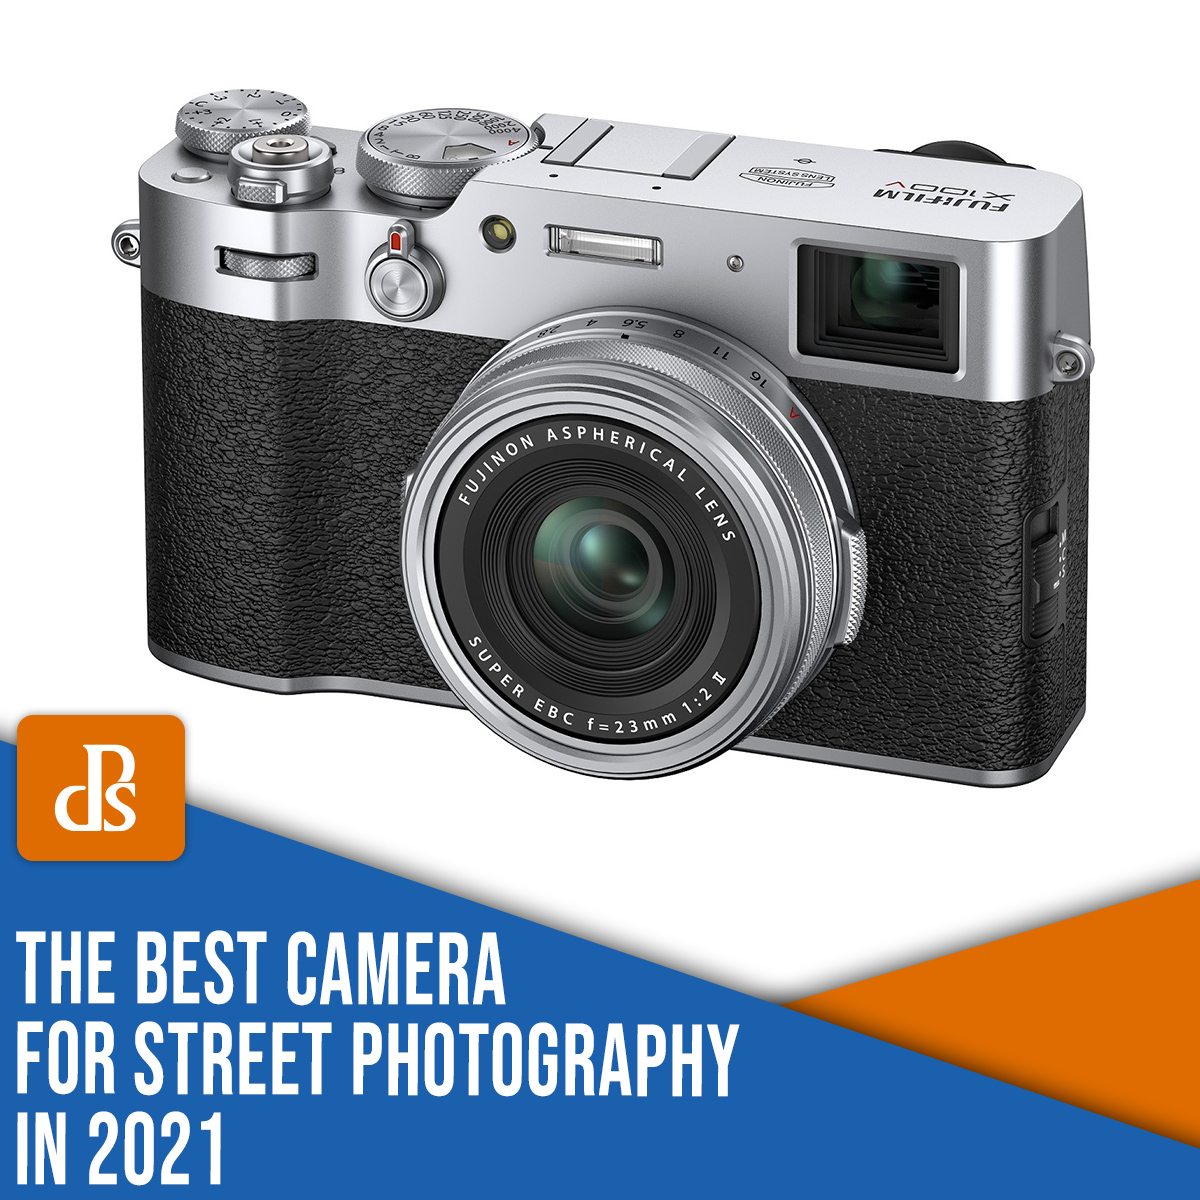 The Best Camera for Street Photography in 2021